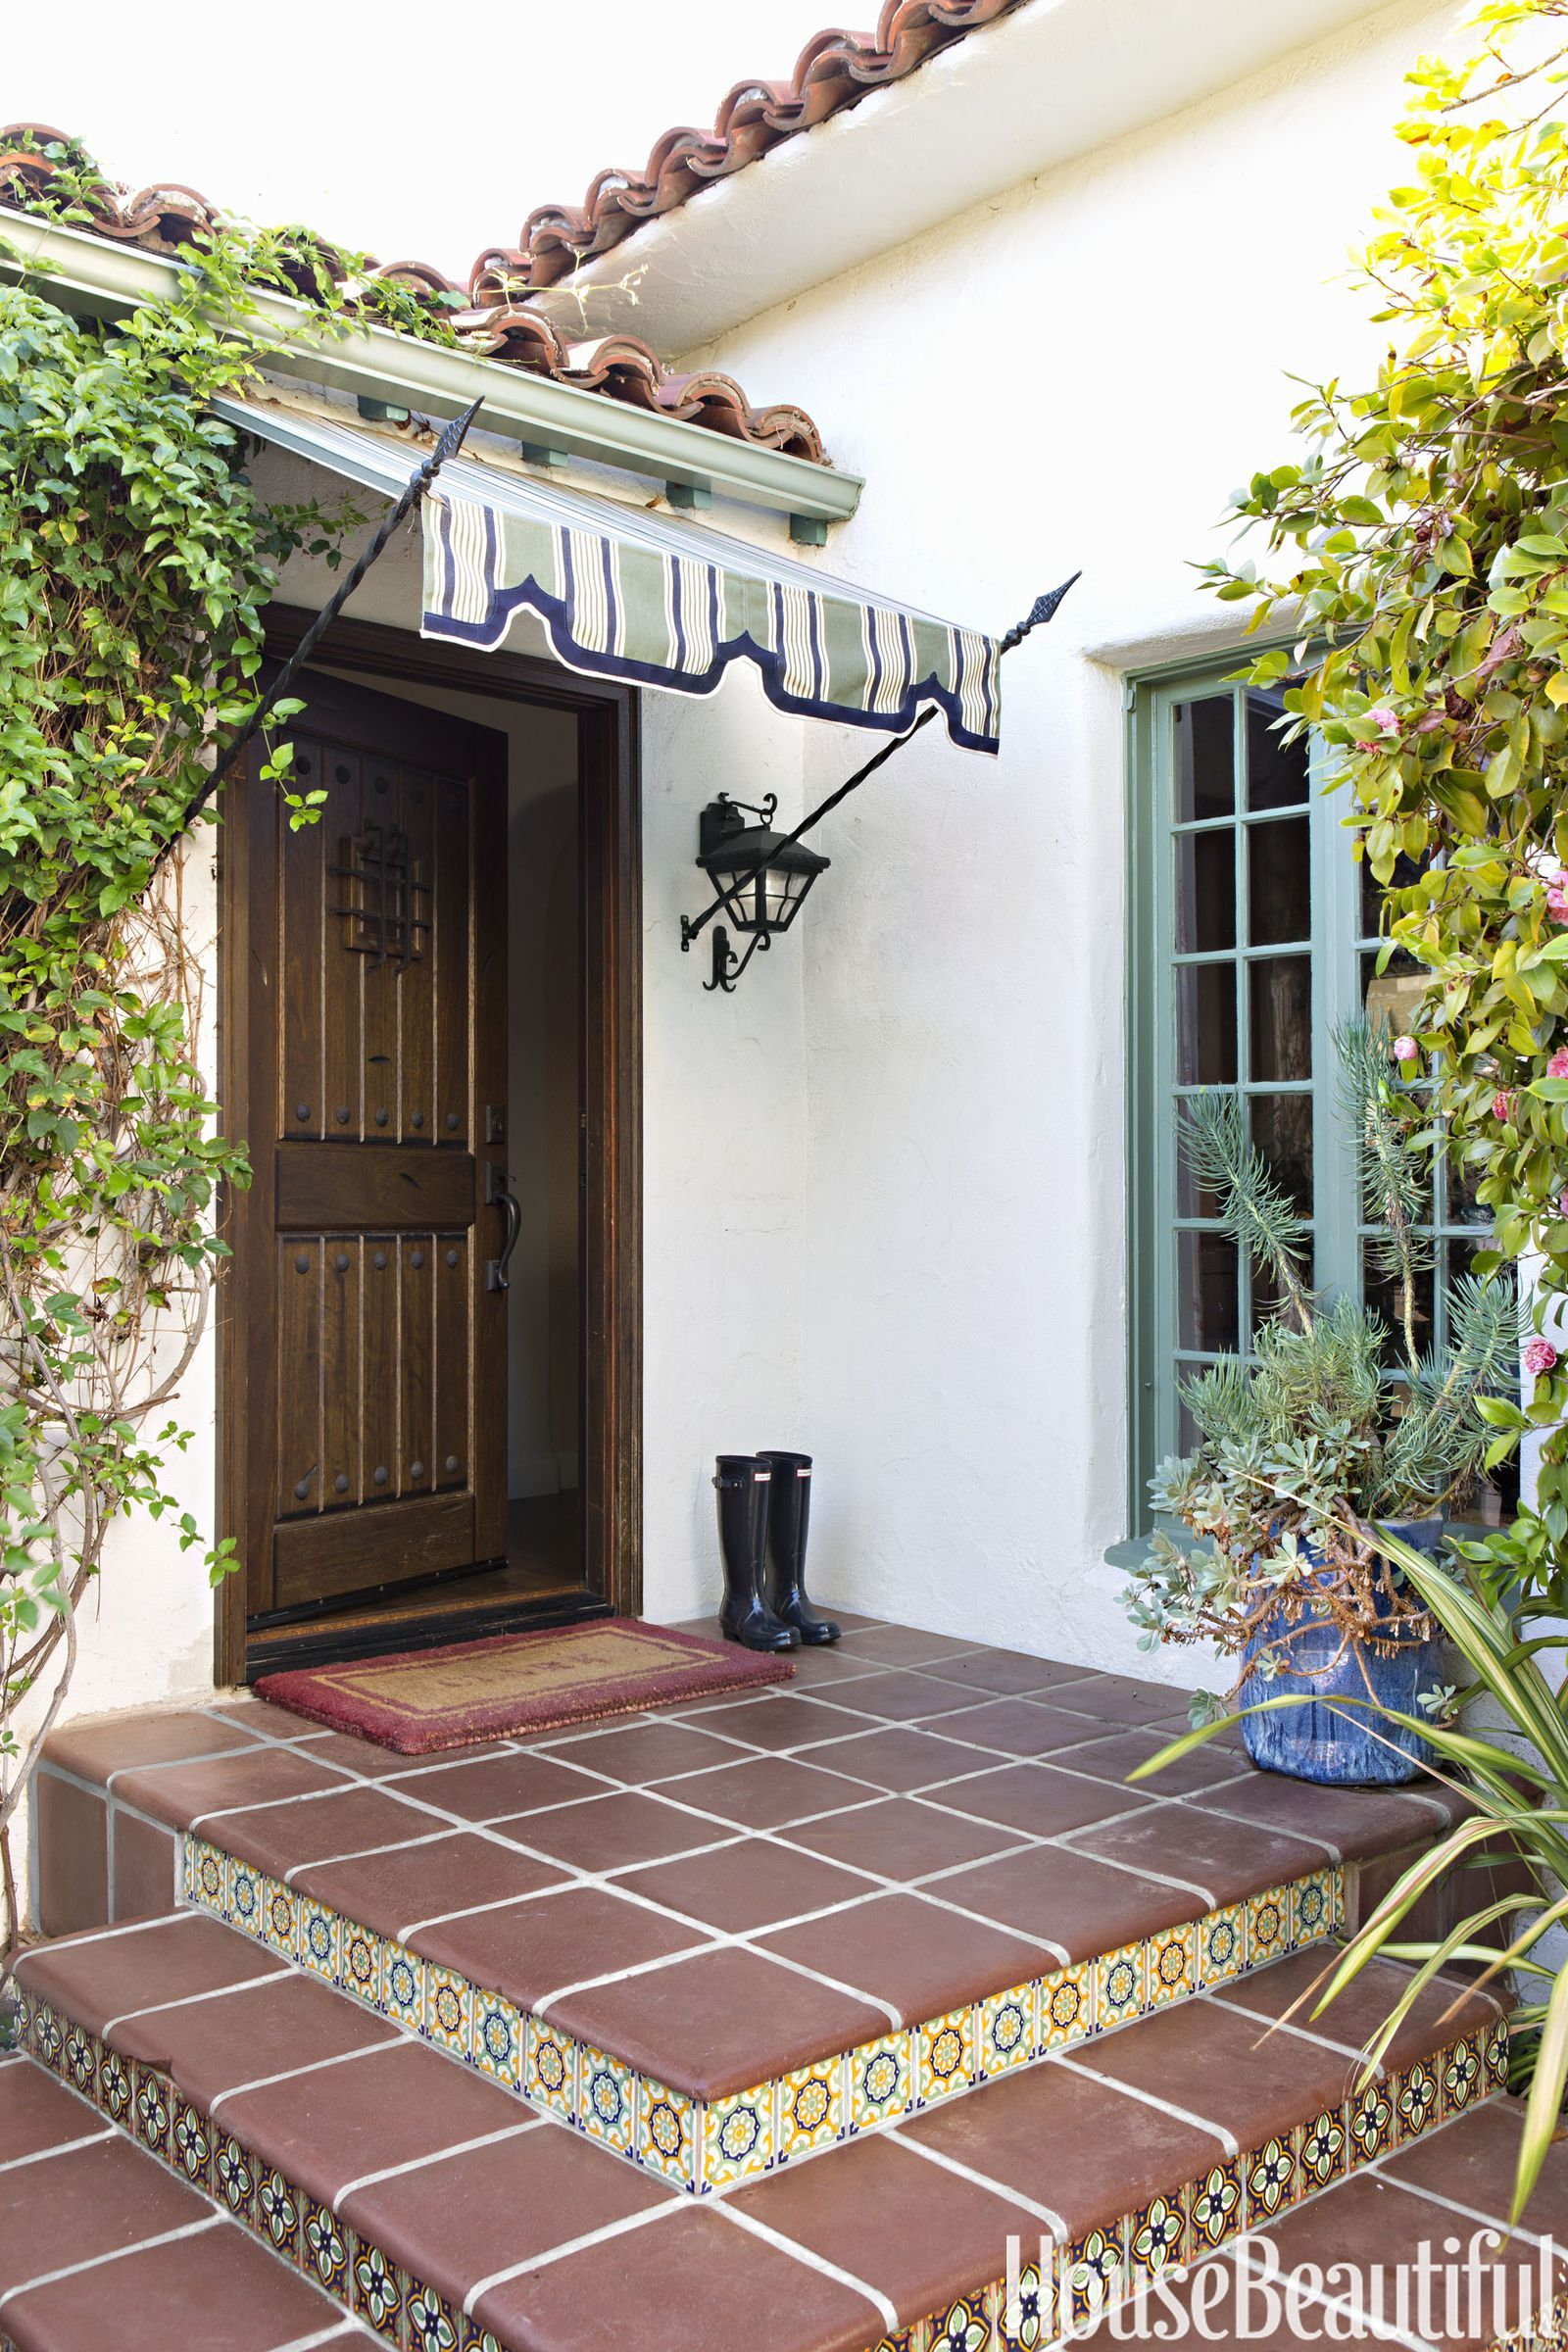 Spanish Bungalow Blue Awnings Google Search Spanish Style Homes Spanish Bungalow Mediterranean Homes